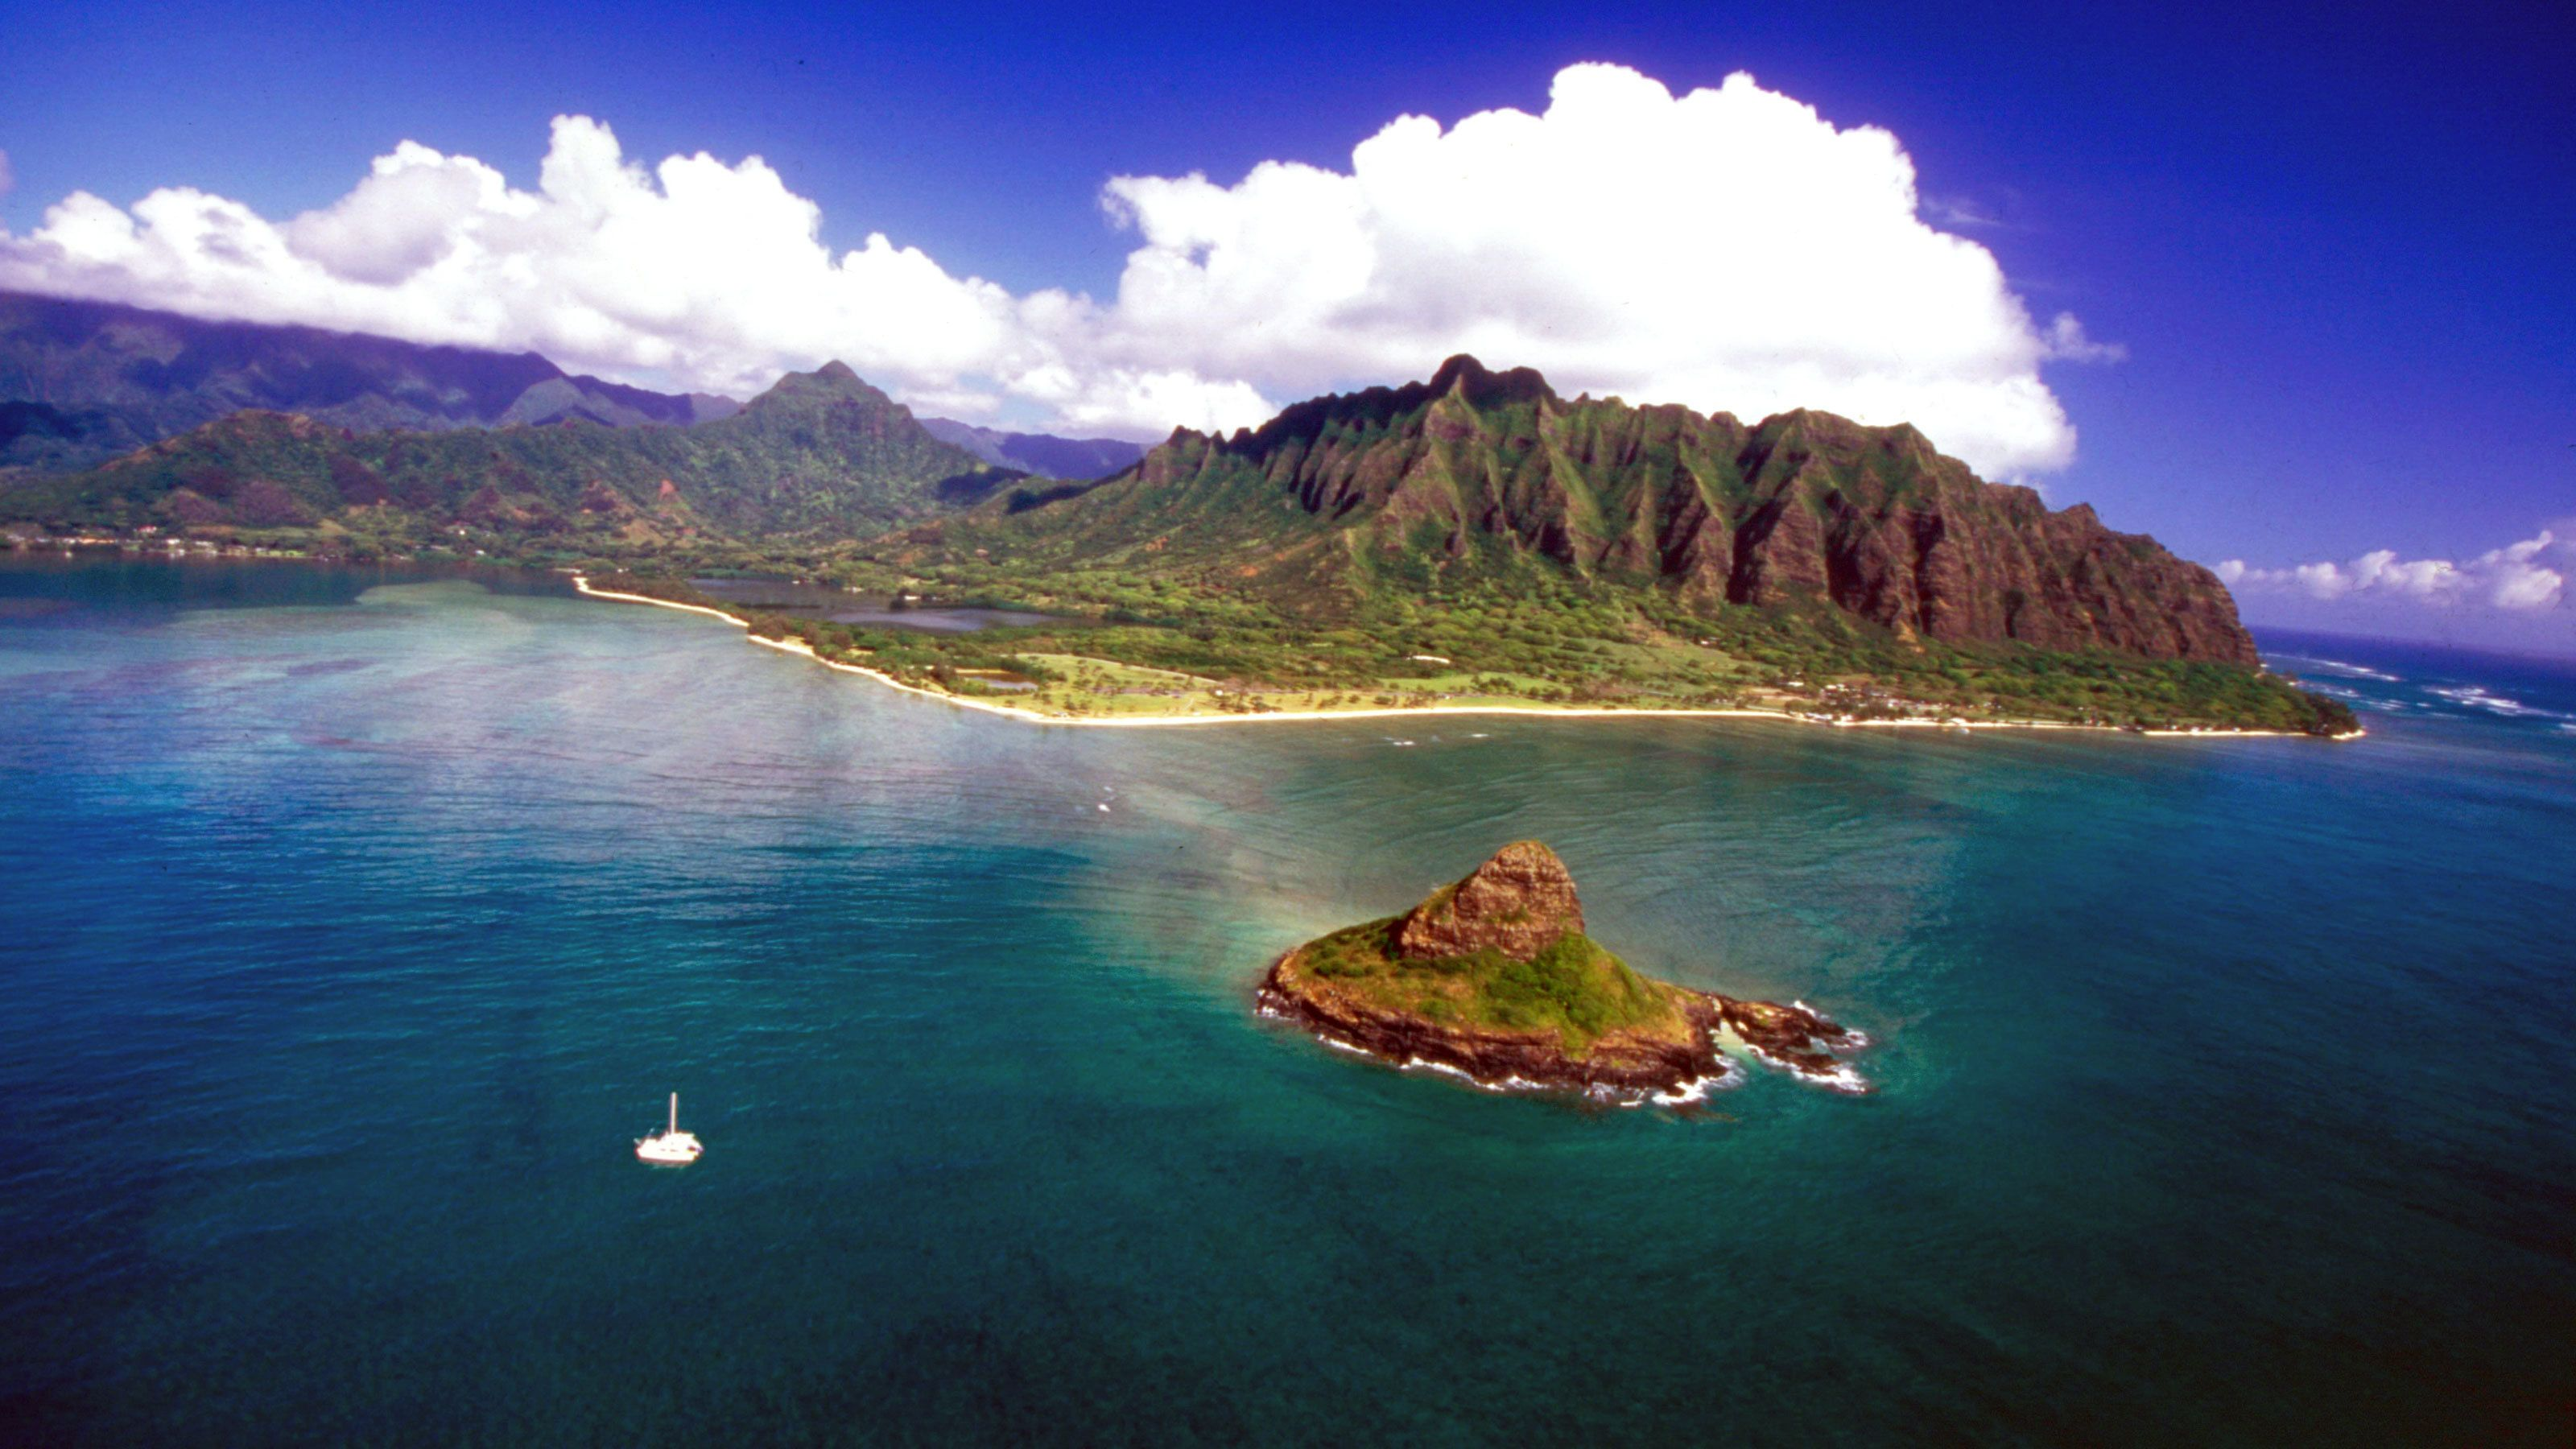 Aerial view of Oahu island